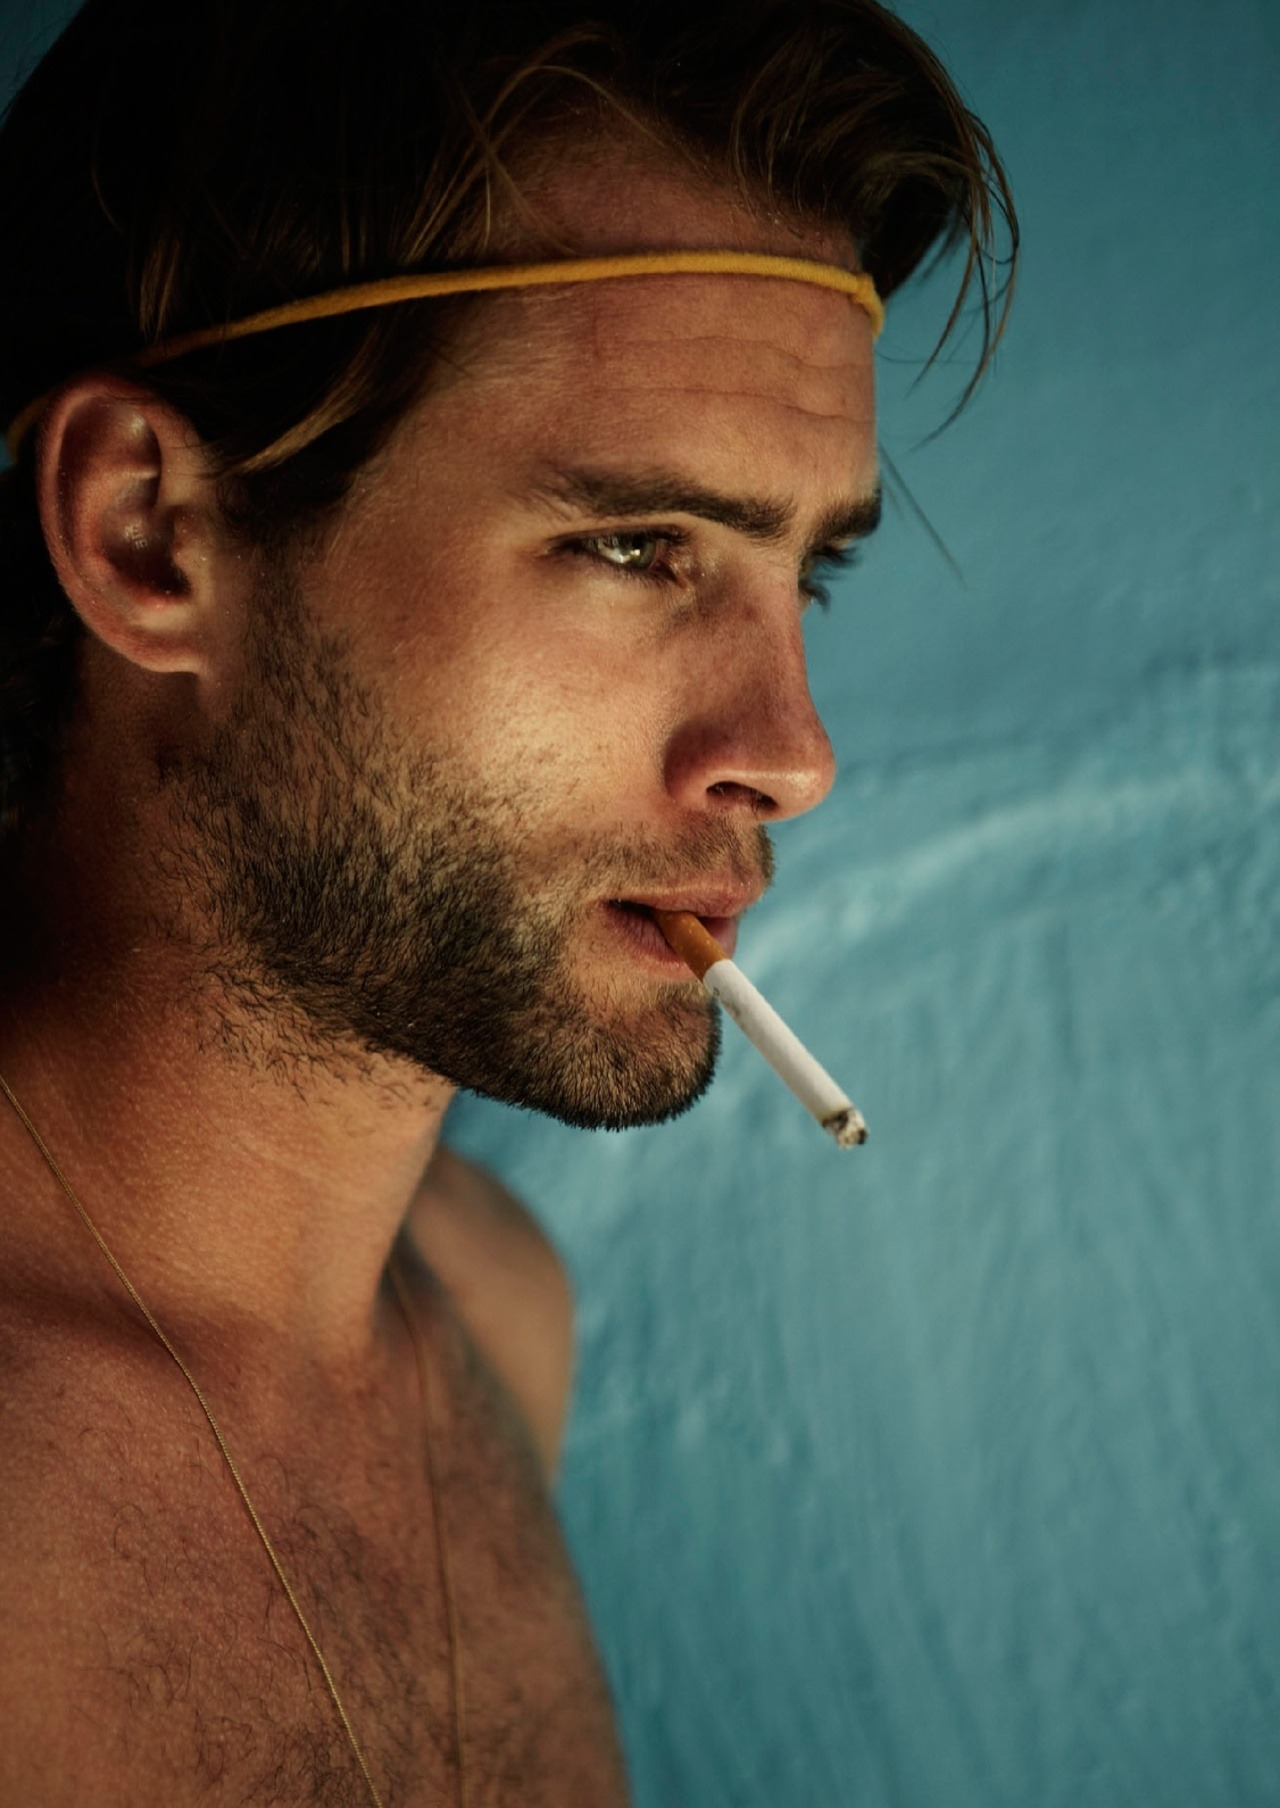 hot-men-smoking:  Matt Merrell